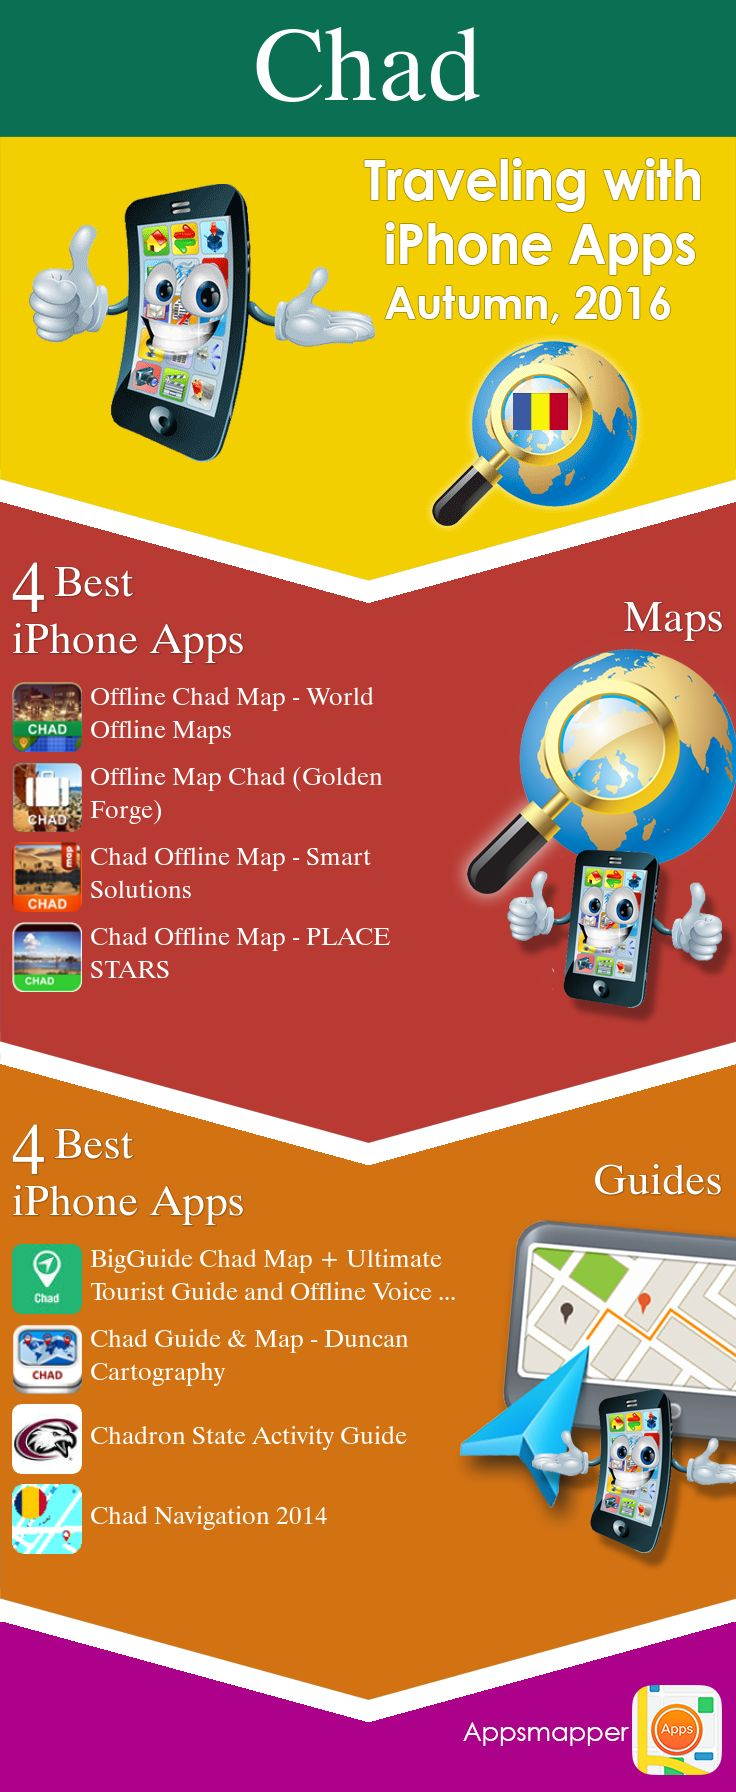 Chad iPhone apps Travel Guides, Maps, Transportation